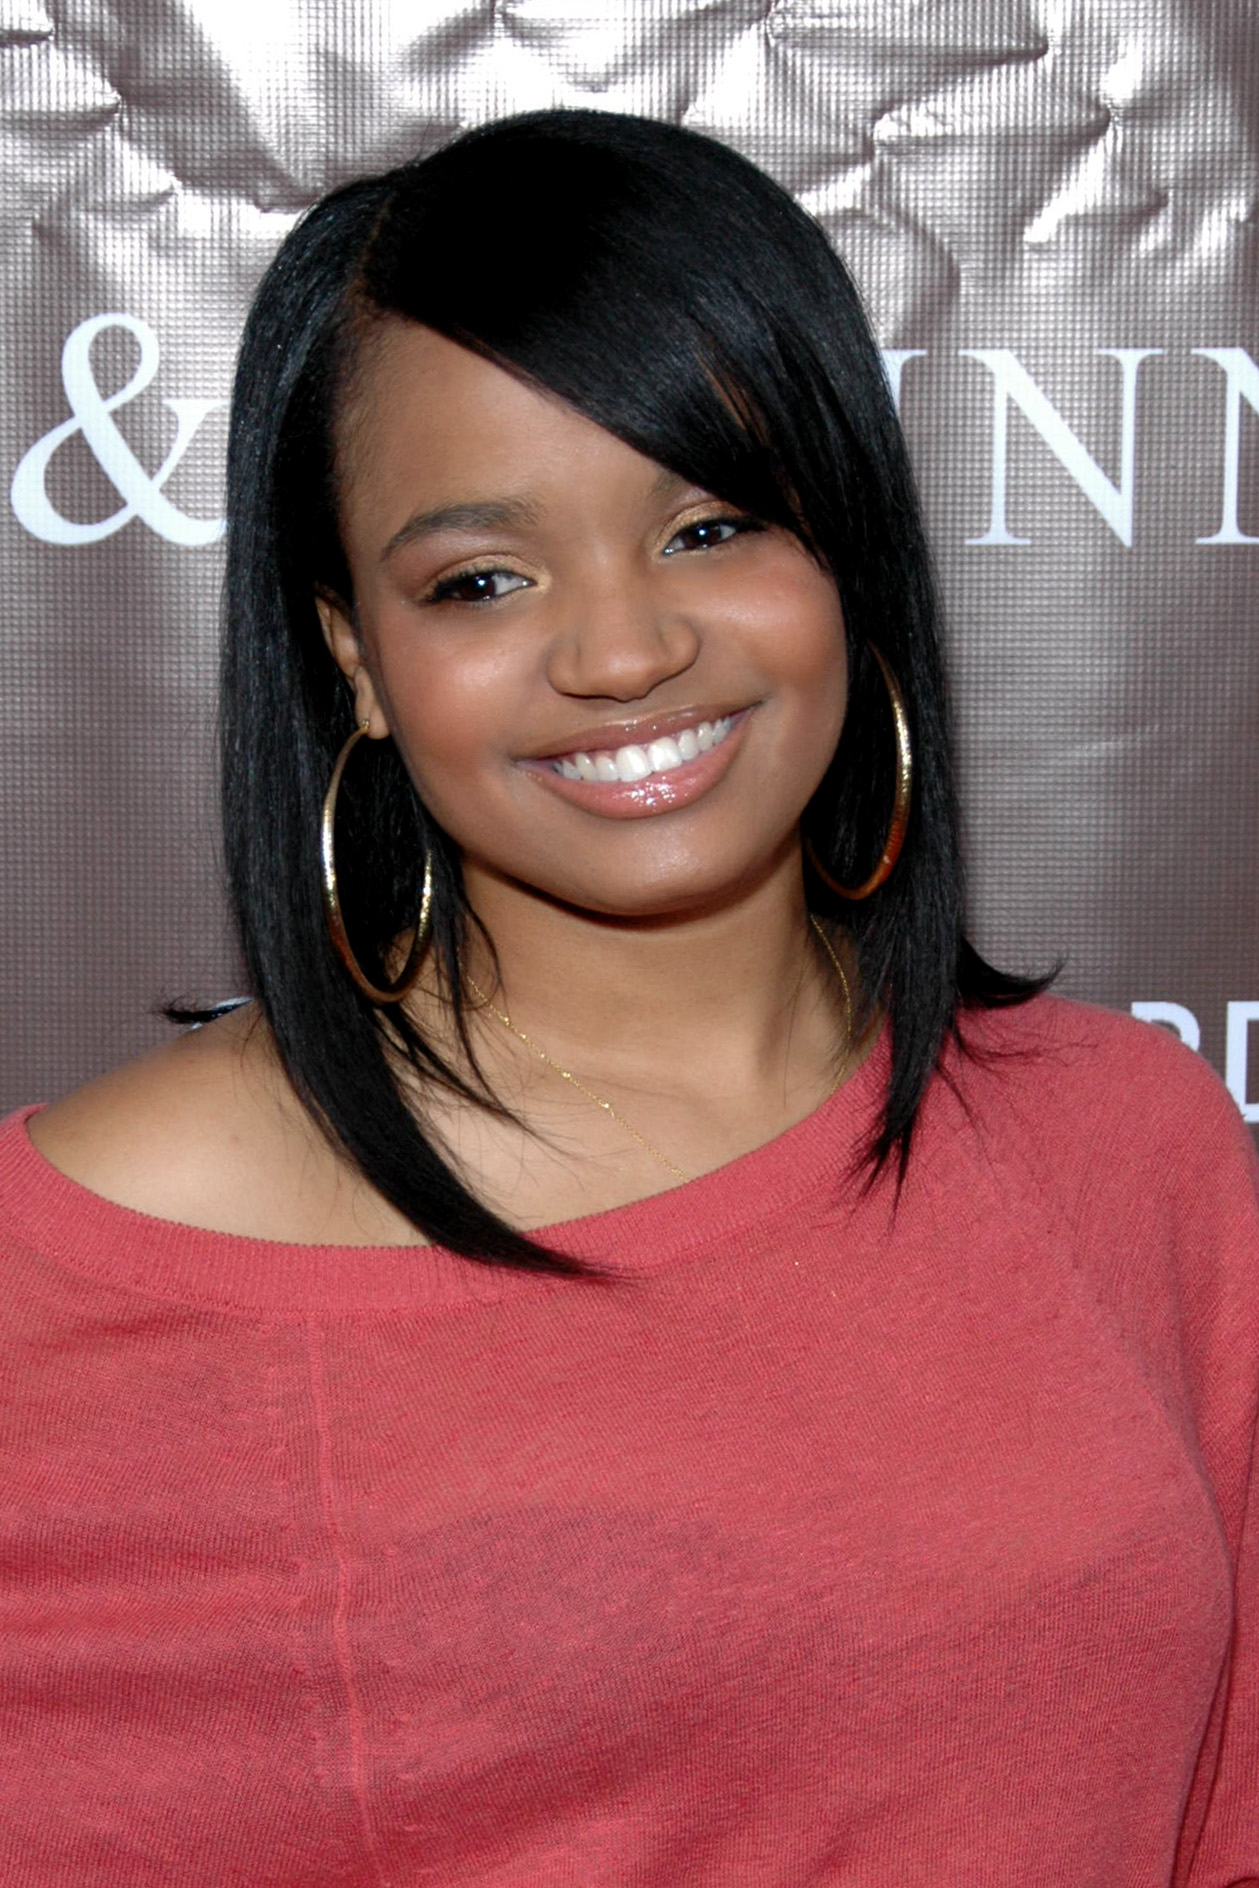 The 31-year old daughter of father Johnny McCullar and mother Kecia Pratt-McCullar Kyla Pratt in 2018 photo. Kyla Pratt earned a  million dollar salary - leaving the net worth at 3 million in 2018